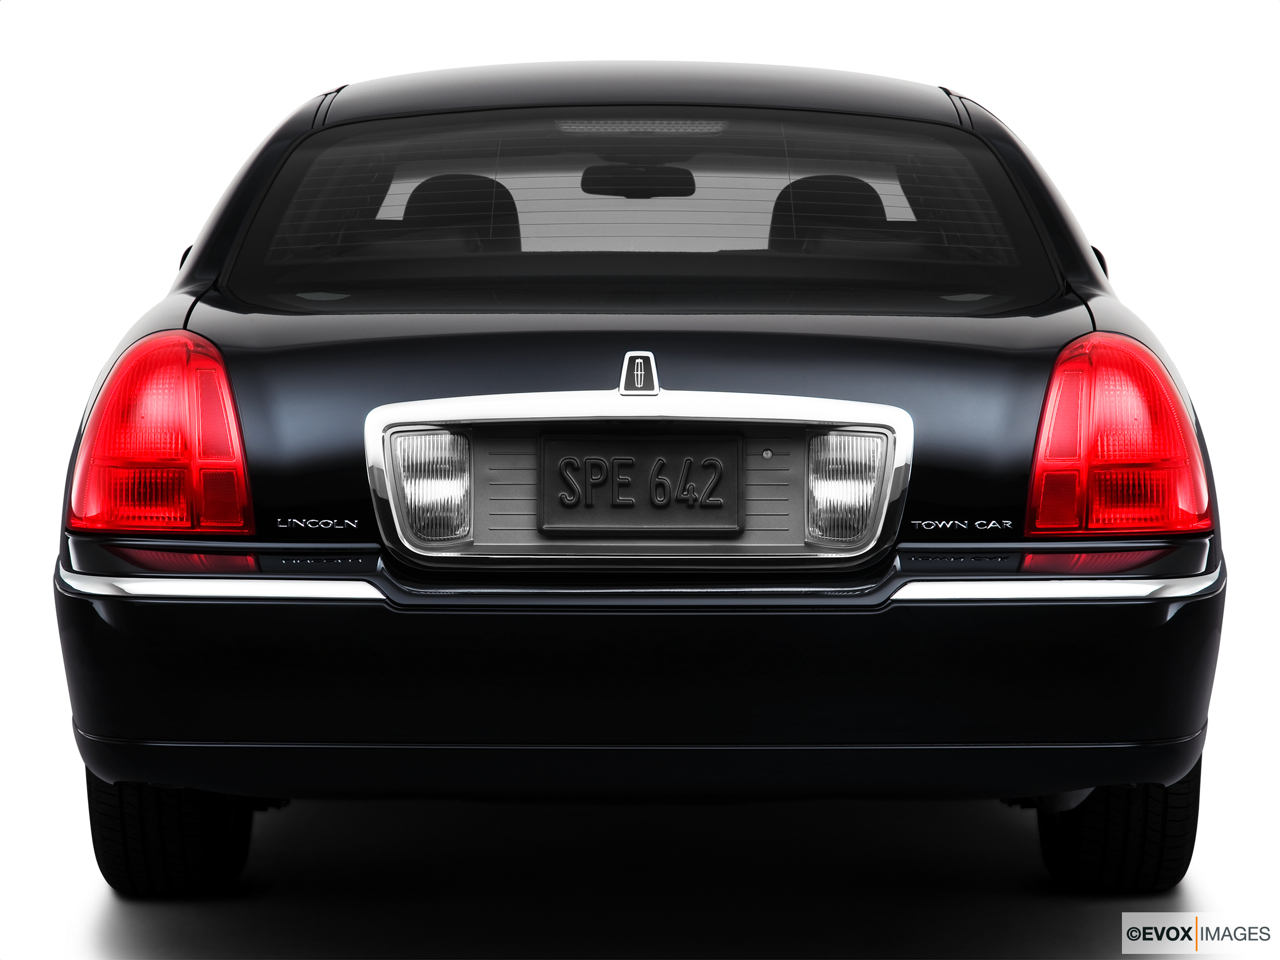 2010 Lincoln Town Car Signature L Low/wide rear.